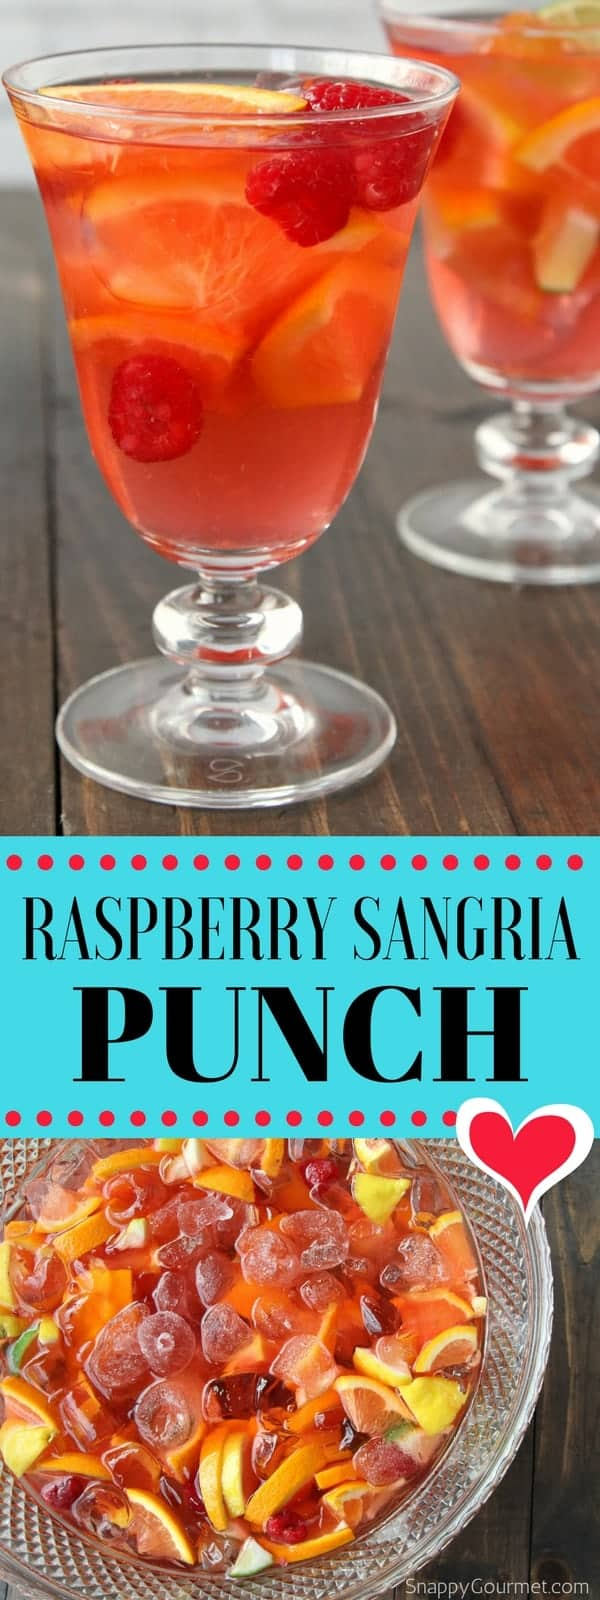 Raspberry Sangria Punch Recipe - best drink for a party or crowd with lots of fresh fruit